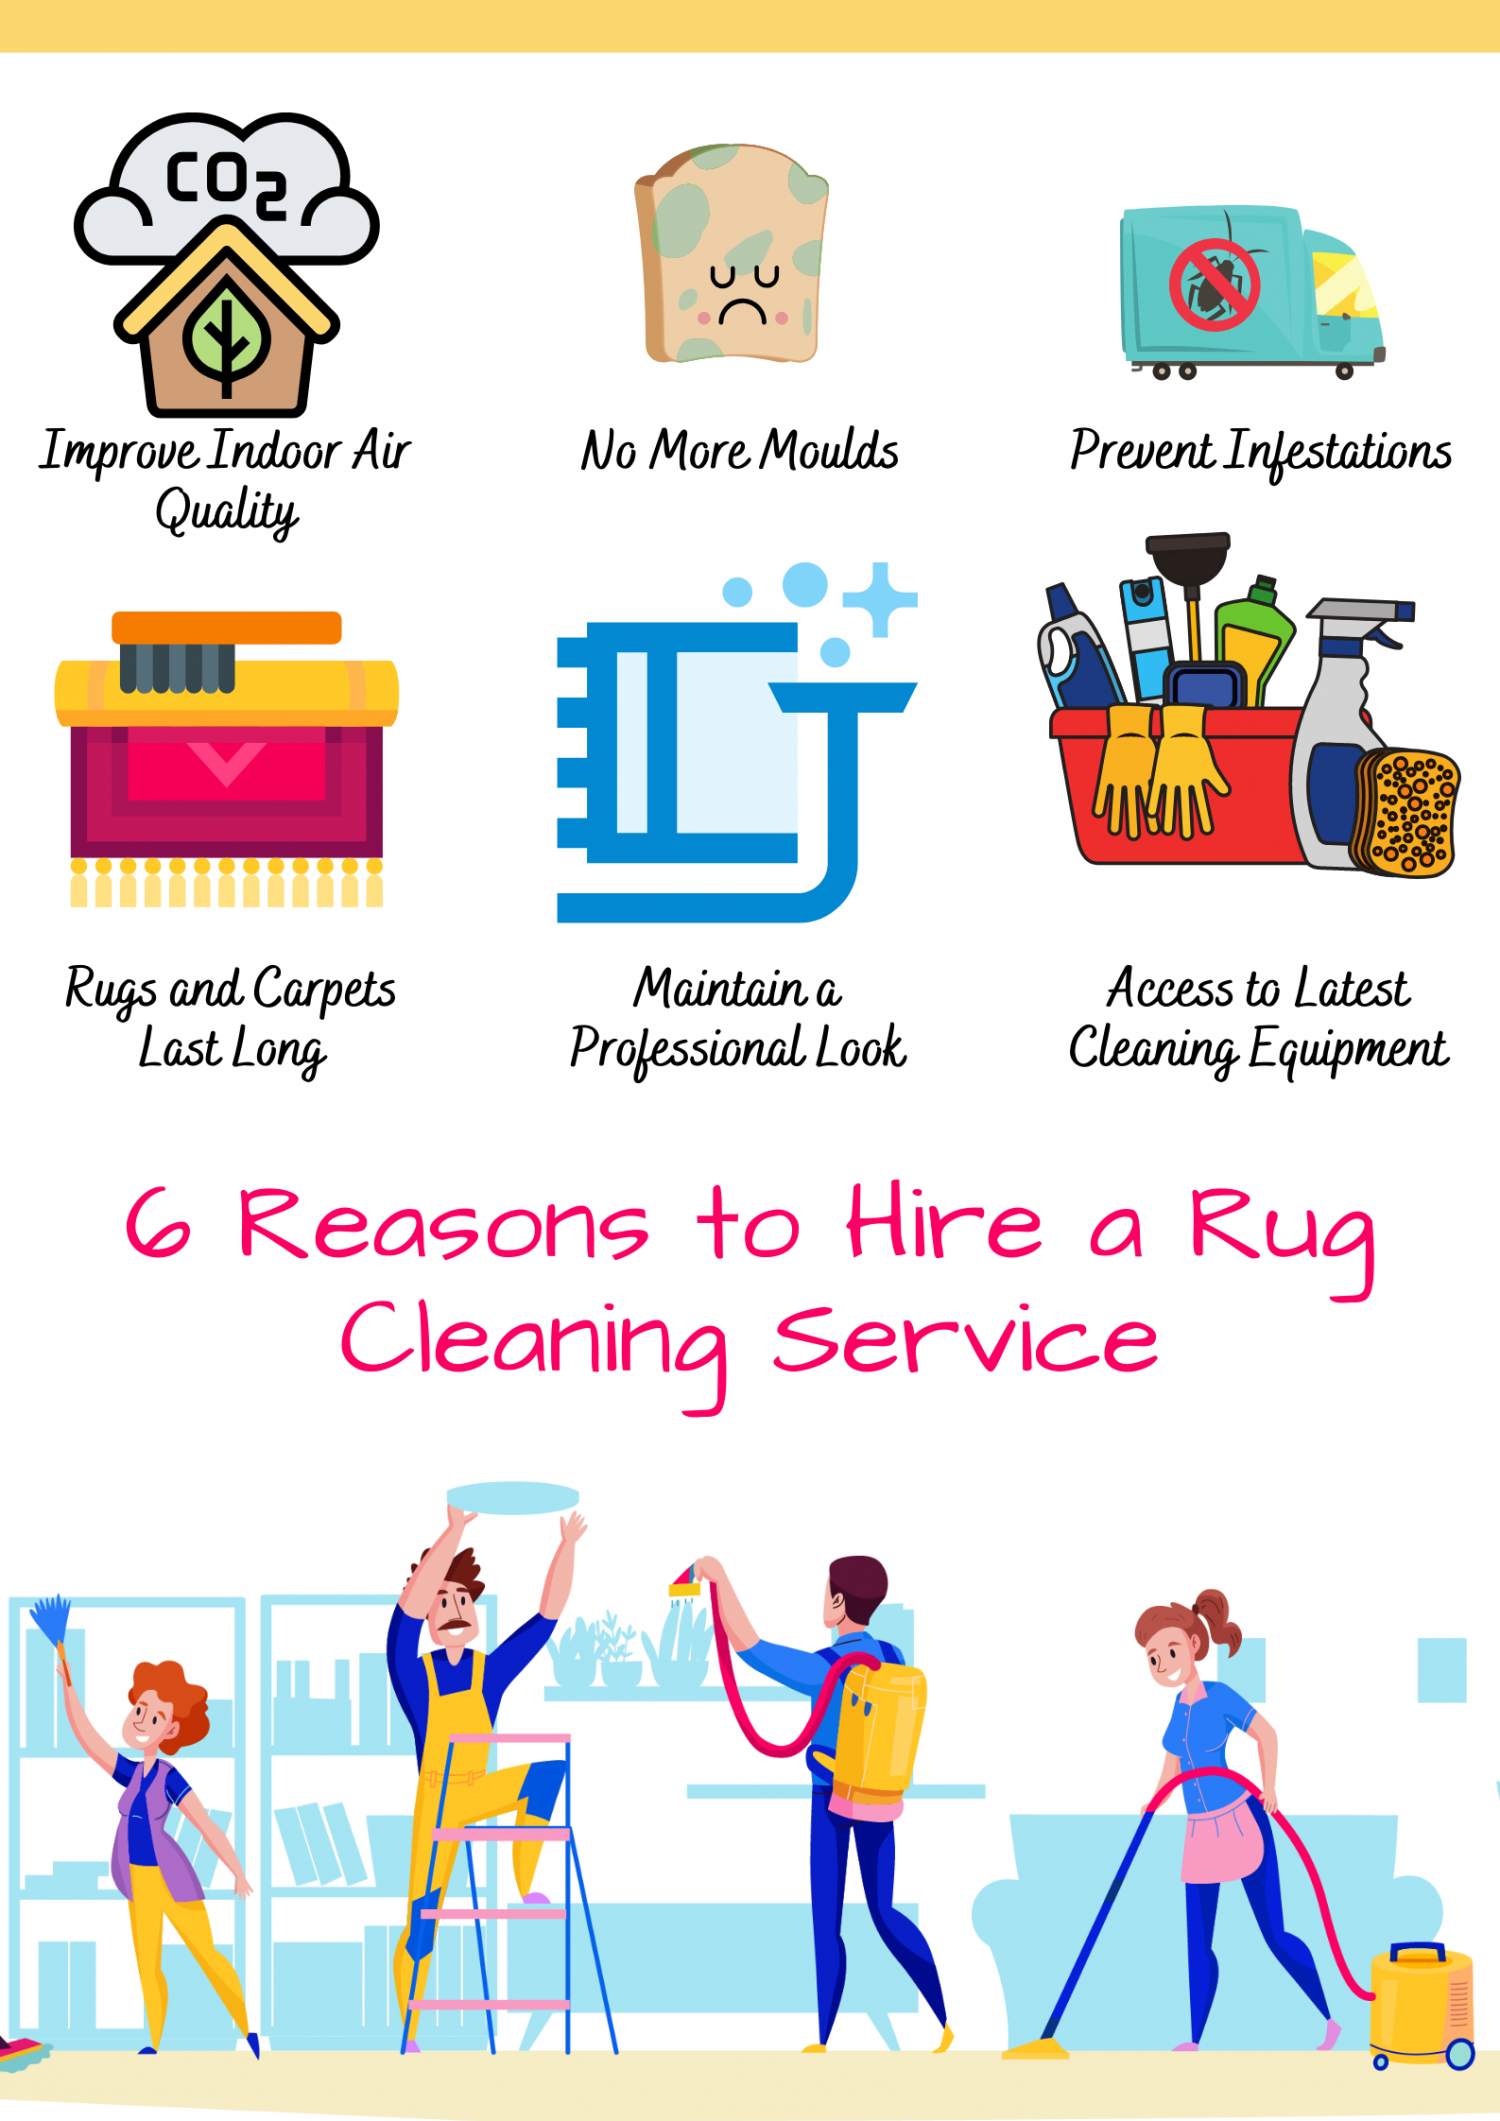 6 Reasons to Hire a Rug Cleaning Service Infographic